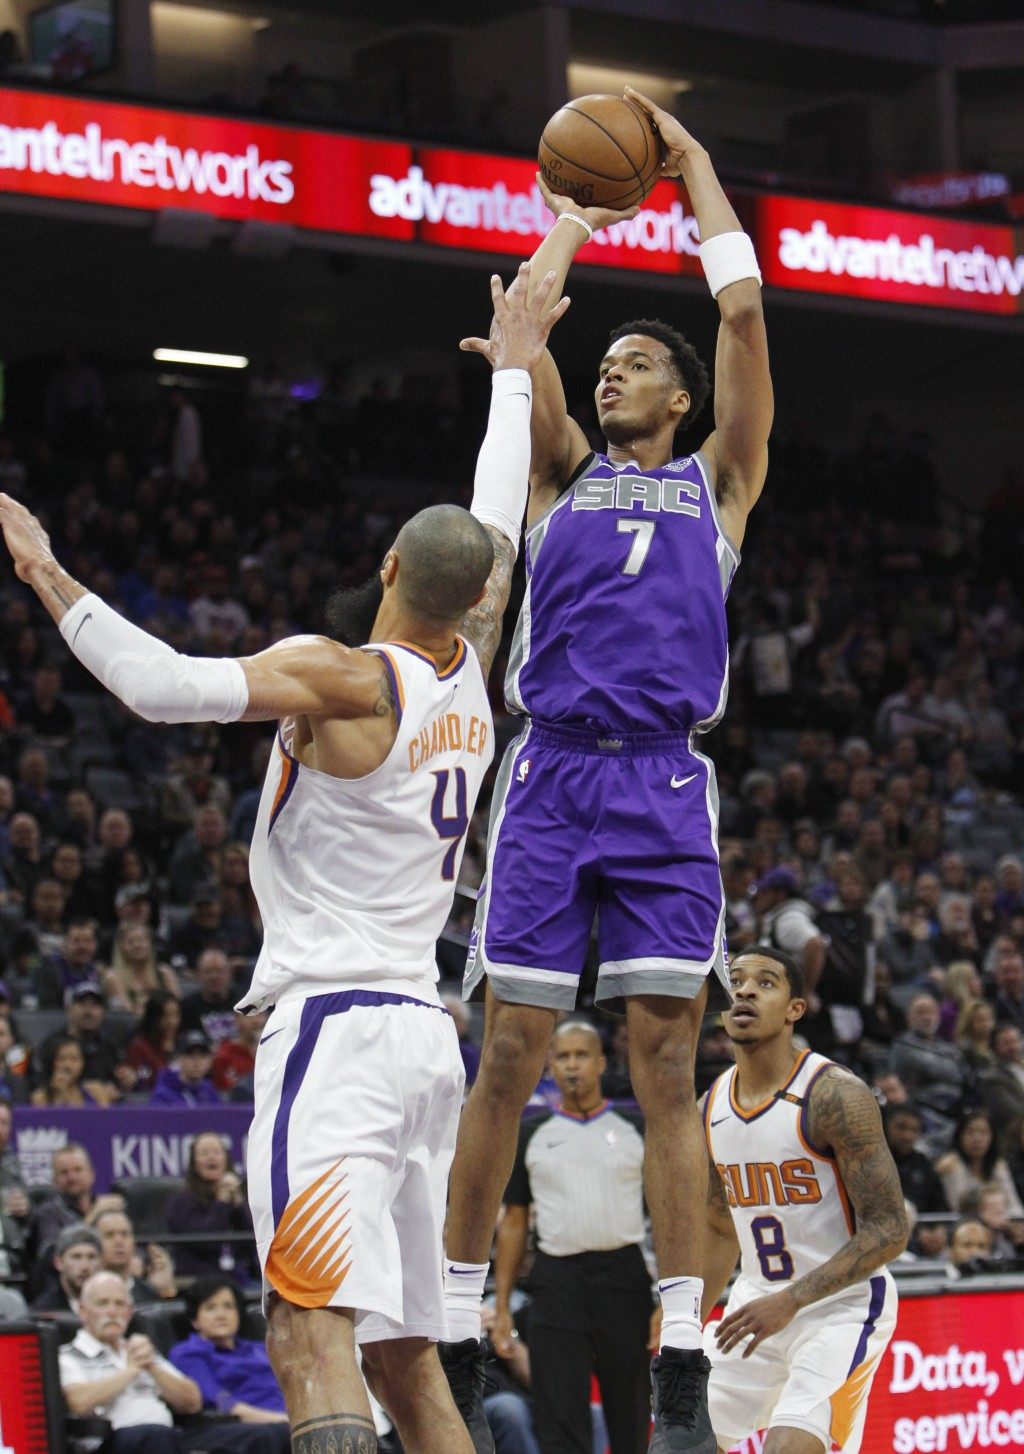 Sacramento Kings forward Skal Labissiere (7) shoots over Phoenix Suns center Tyson Chandler (4) during the first half of an NBA basketball game in Sac...